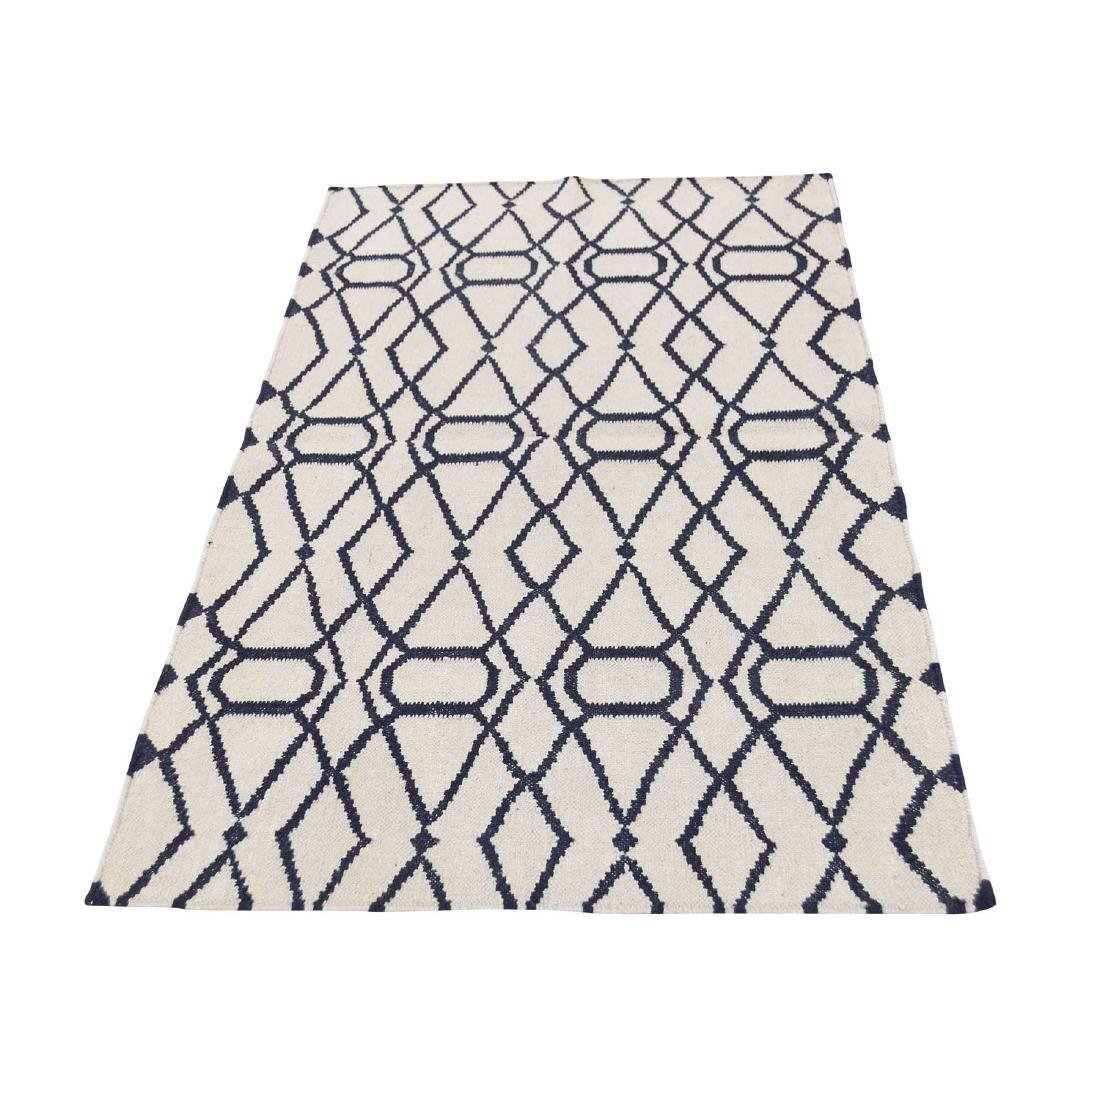 Hand Woven Durie Kilim Reversible Pure Wool Rug 3x5.2